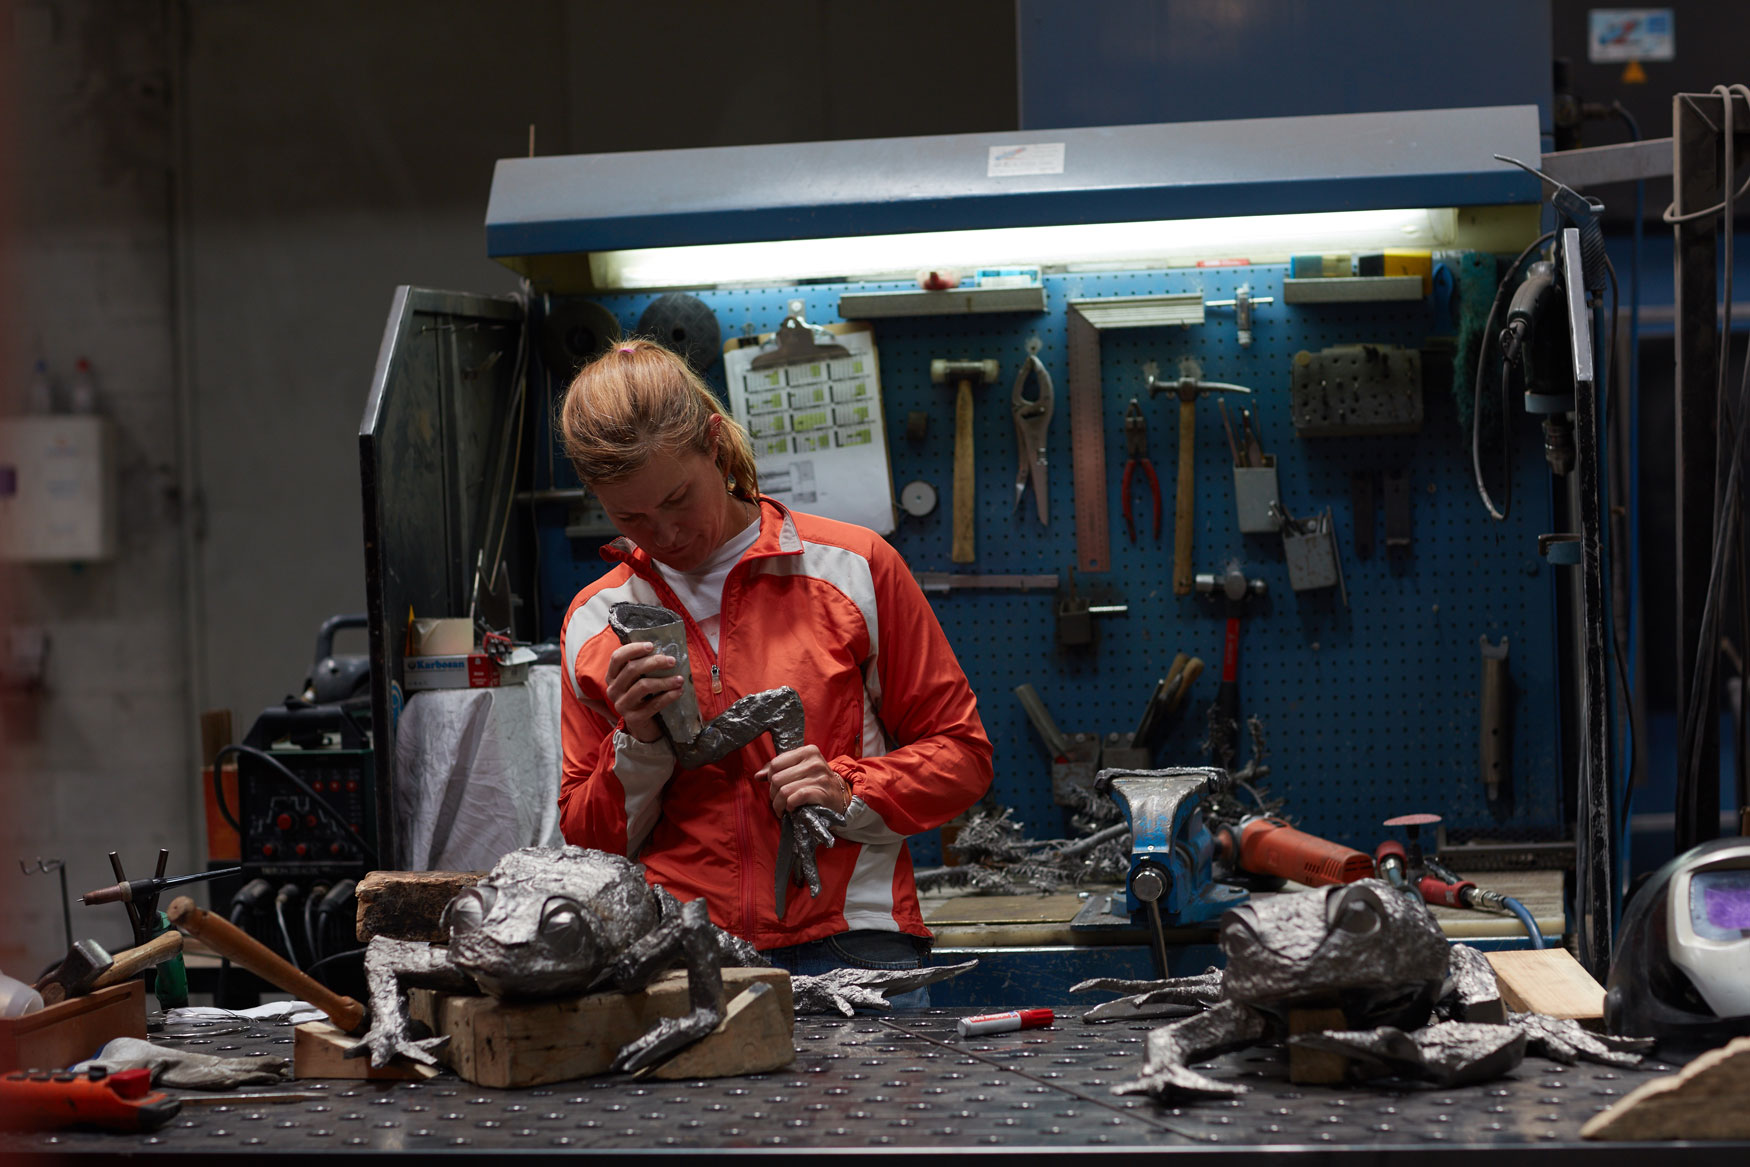 Katherine Taylor working in Alfa Arte. FROGS project, in stainless steel.